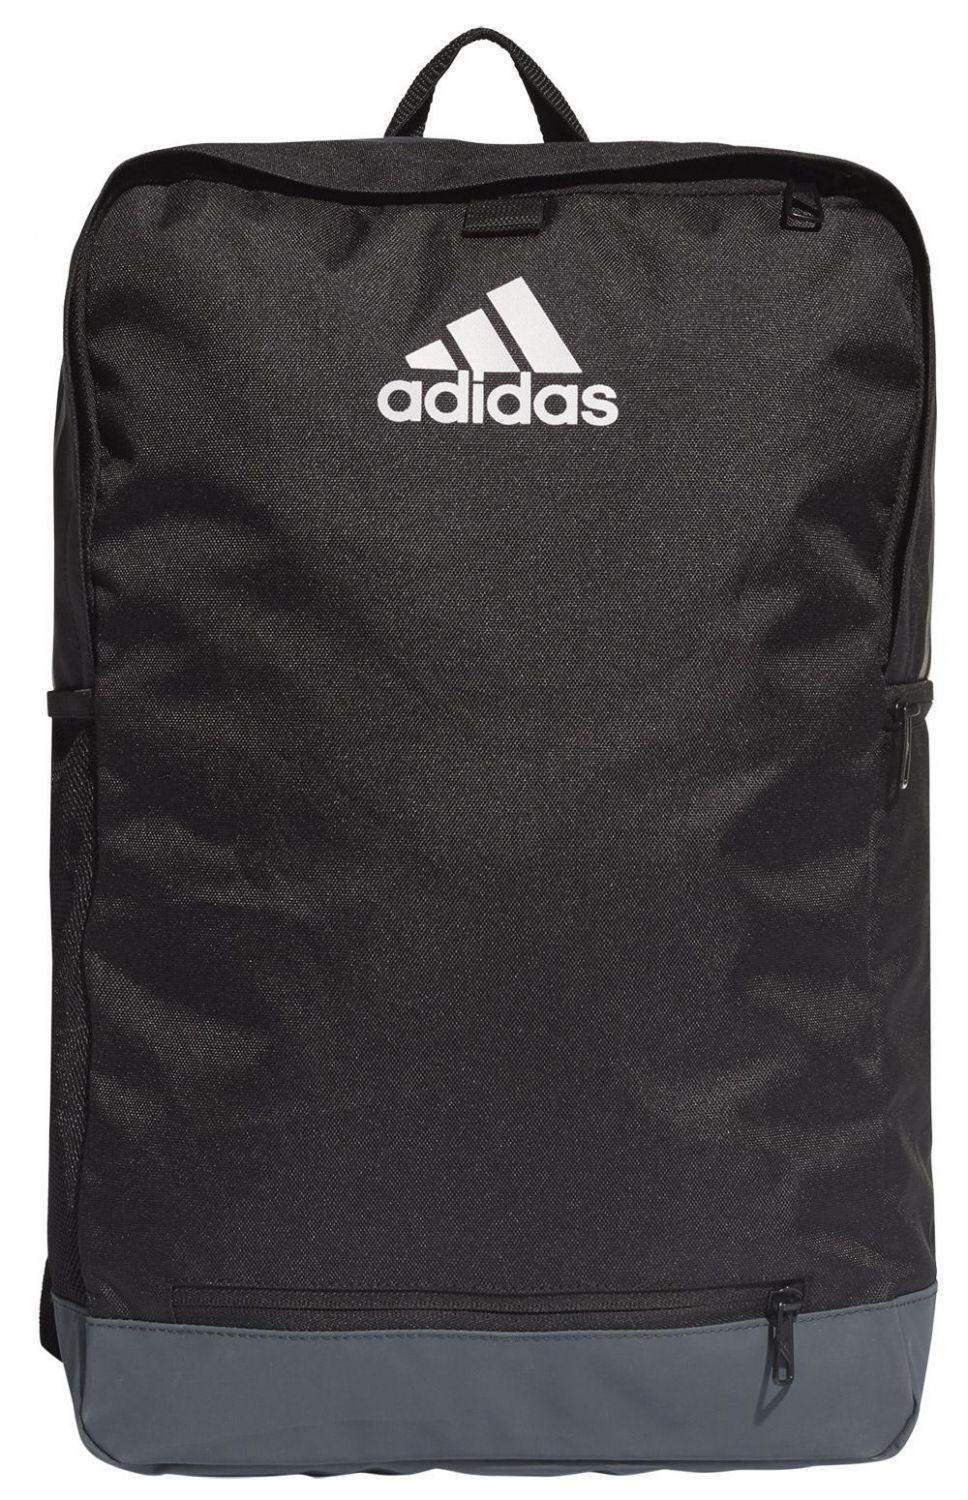 adidas-tiro-backpack-rucksack-farbe-black-darkgrey-white-